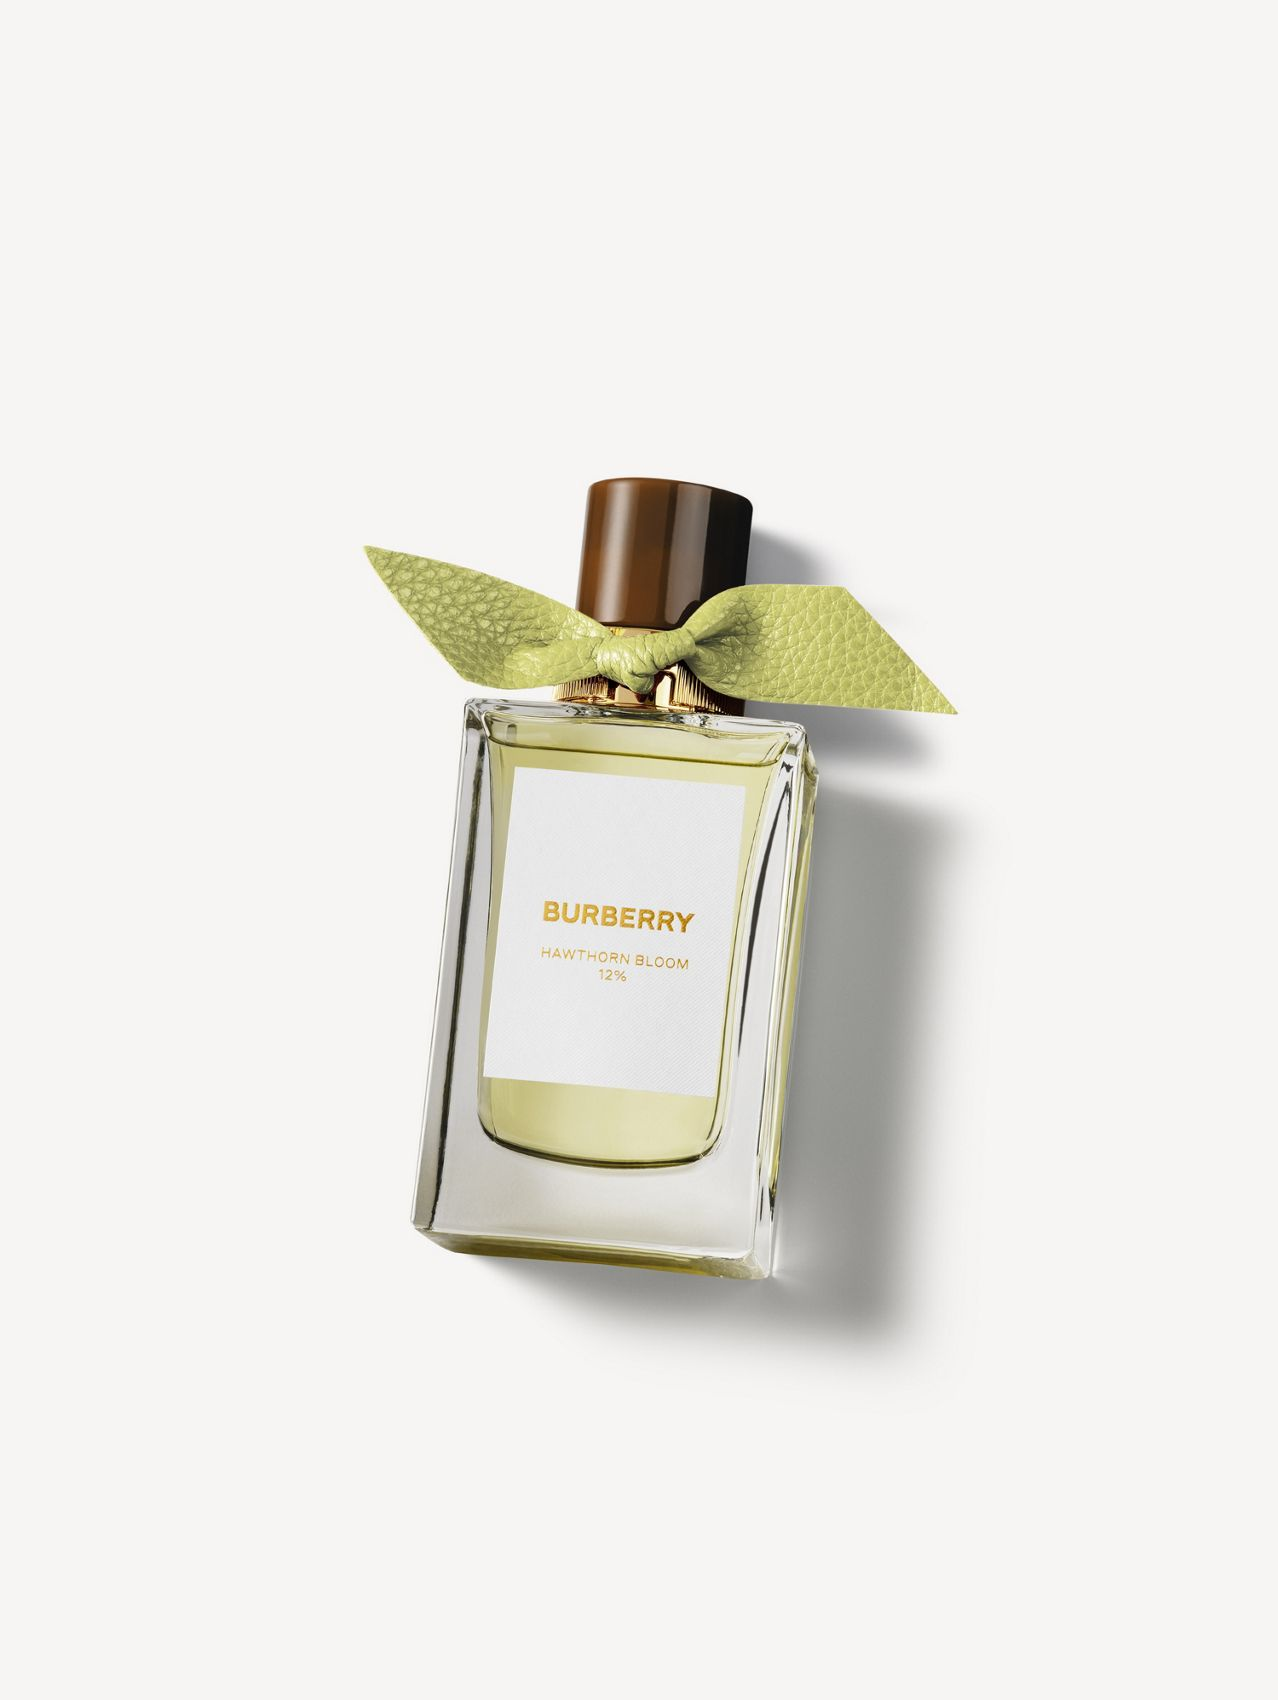 Burberry Signatures Hawthorn Bloom Eau de Parfum 100ml in 100 Ml